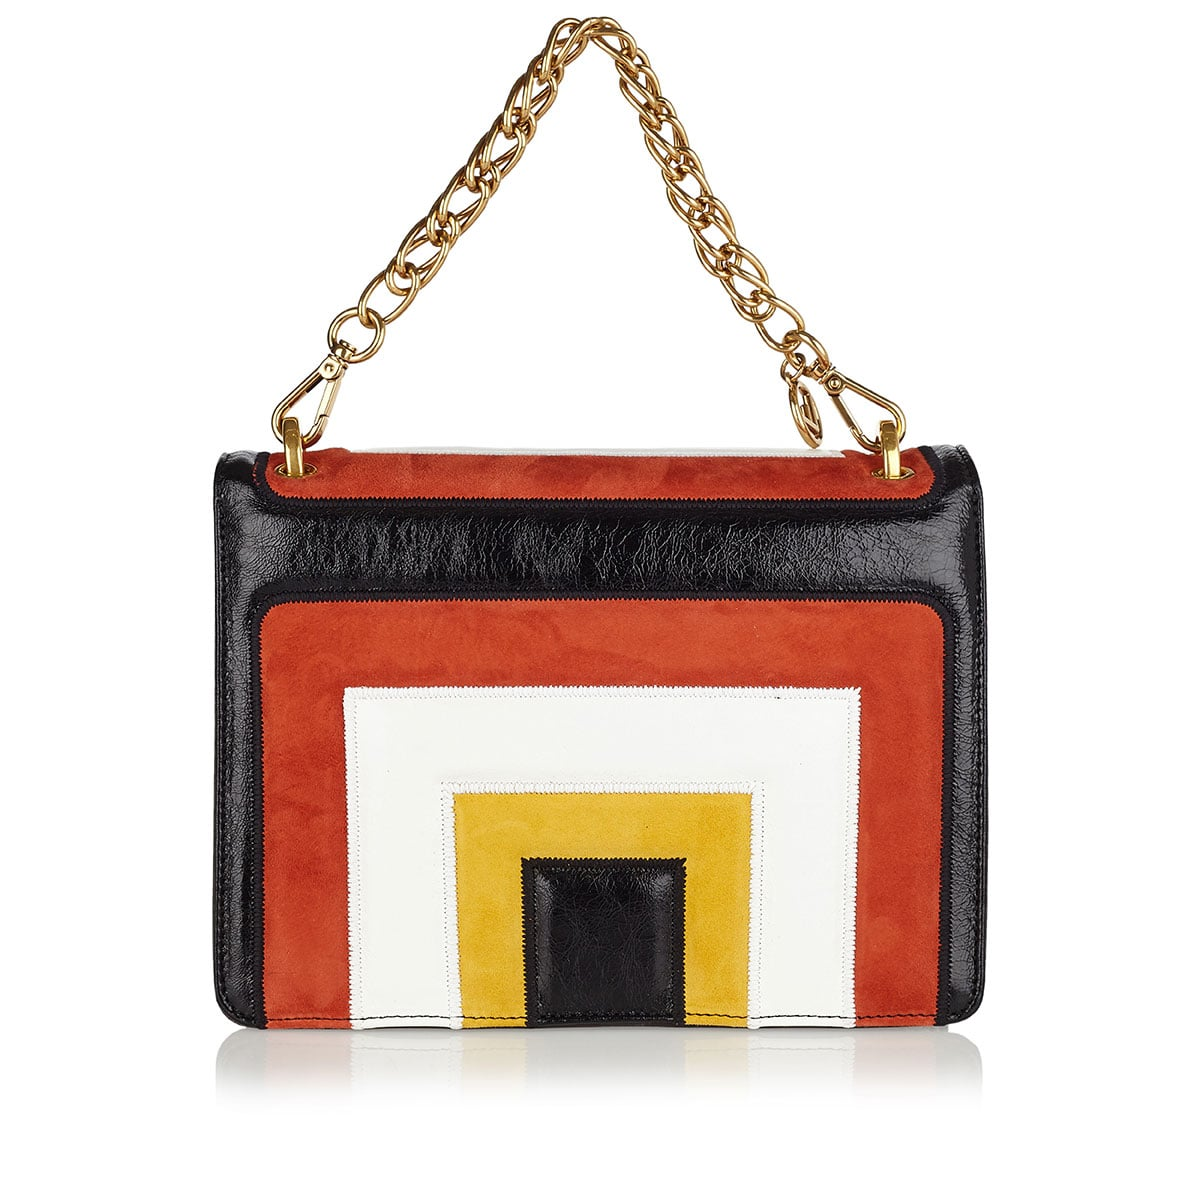 Kan U medium color-blocking leather and suede bag